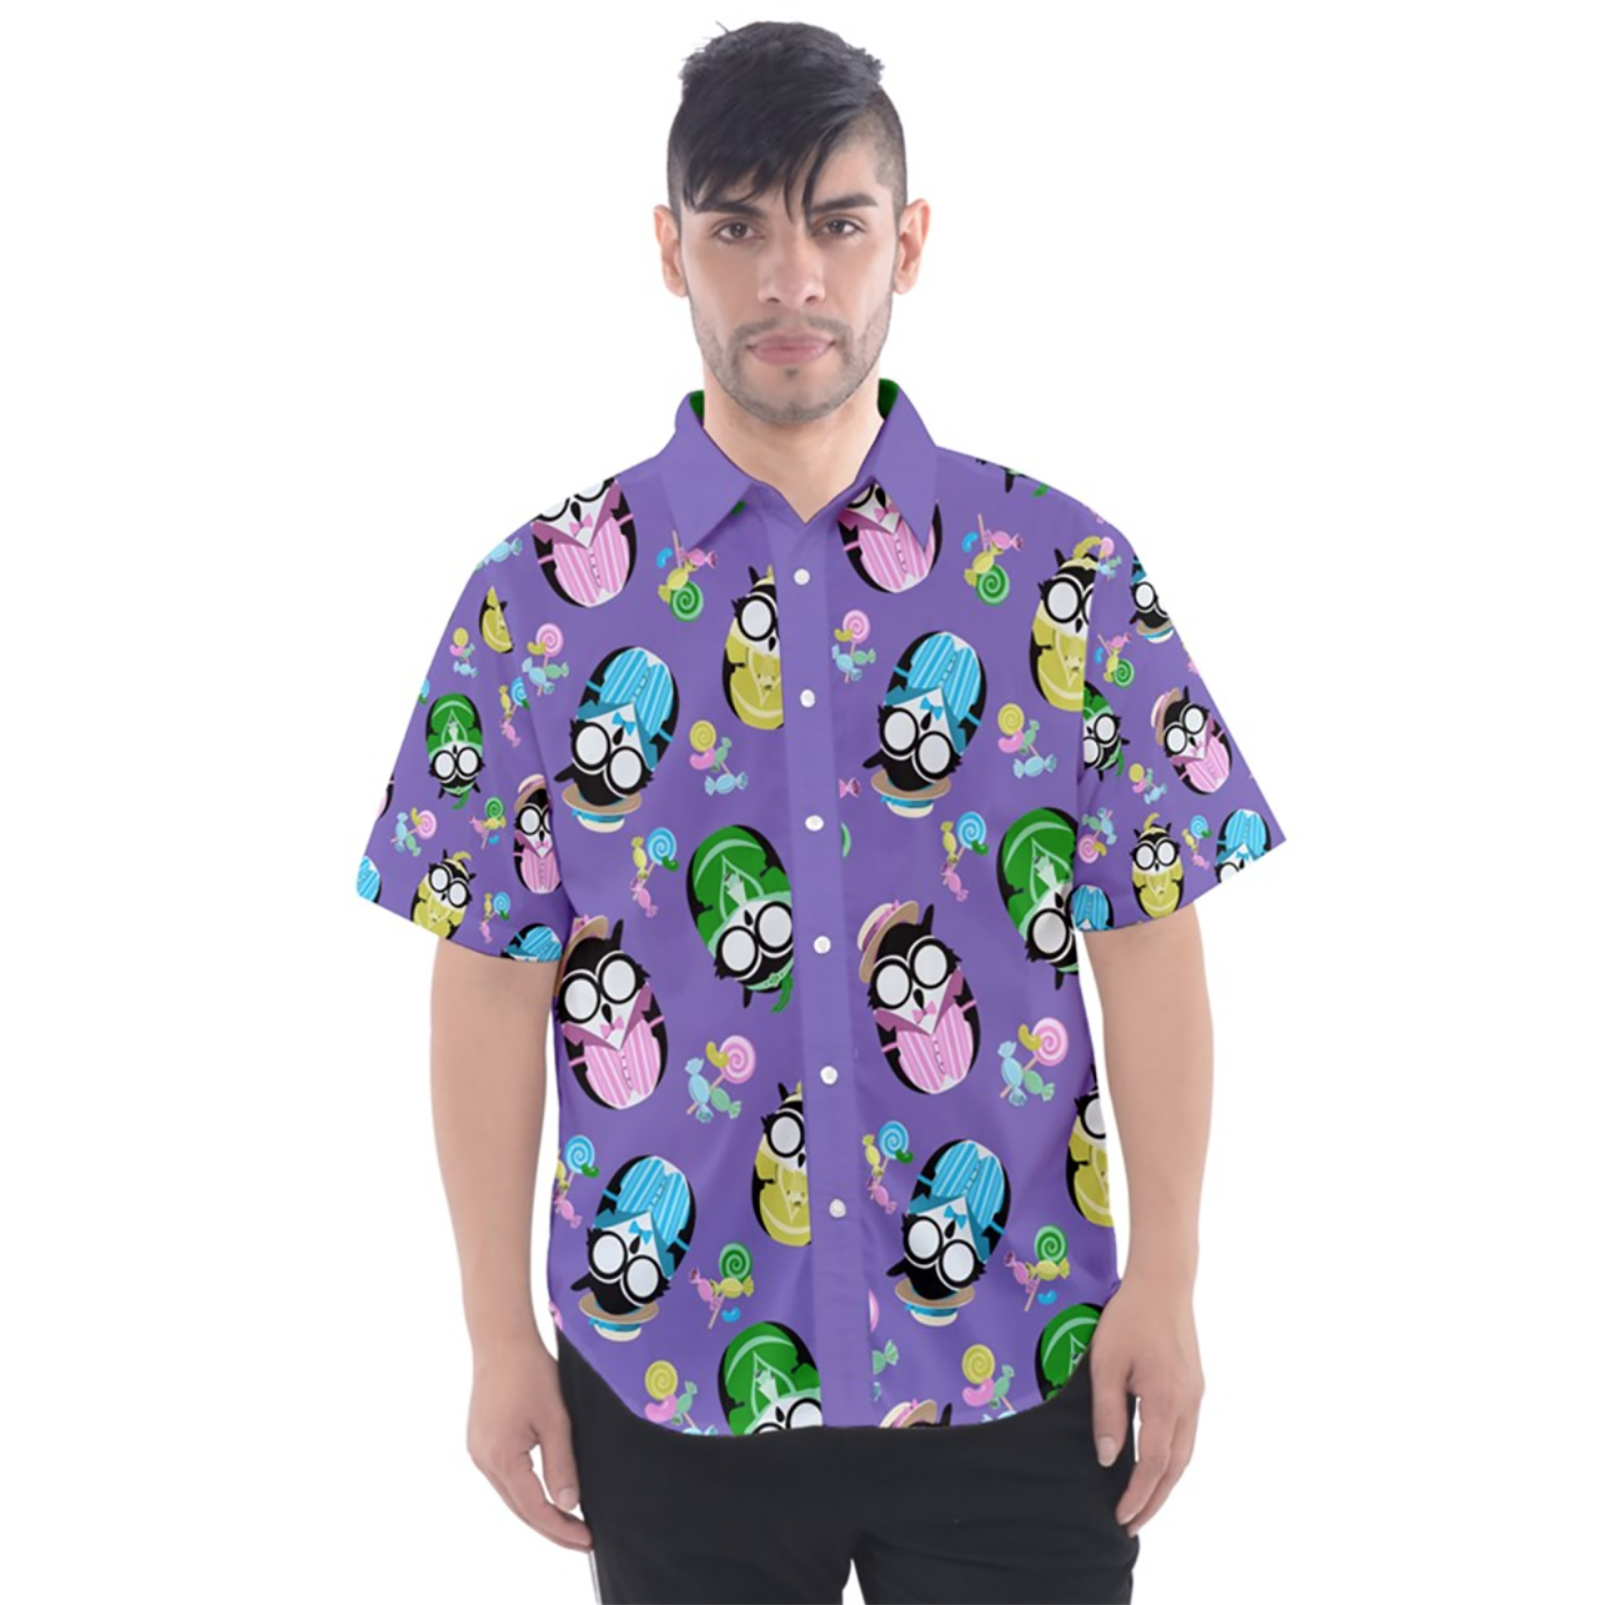 Easter Owl Patterned Button Up Short Sleeve Shirt